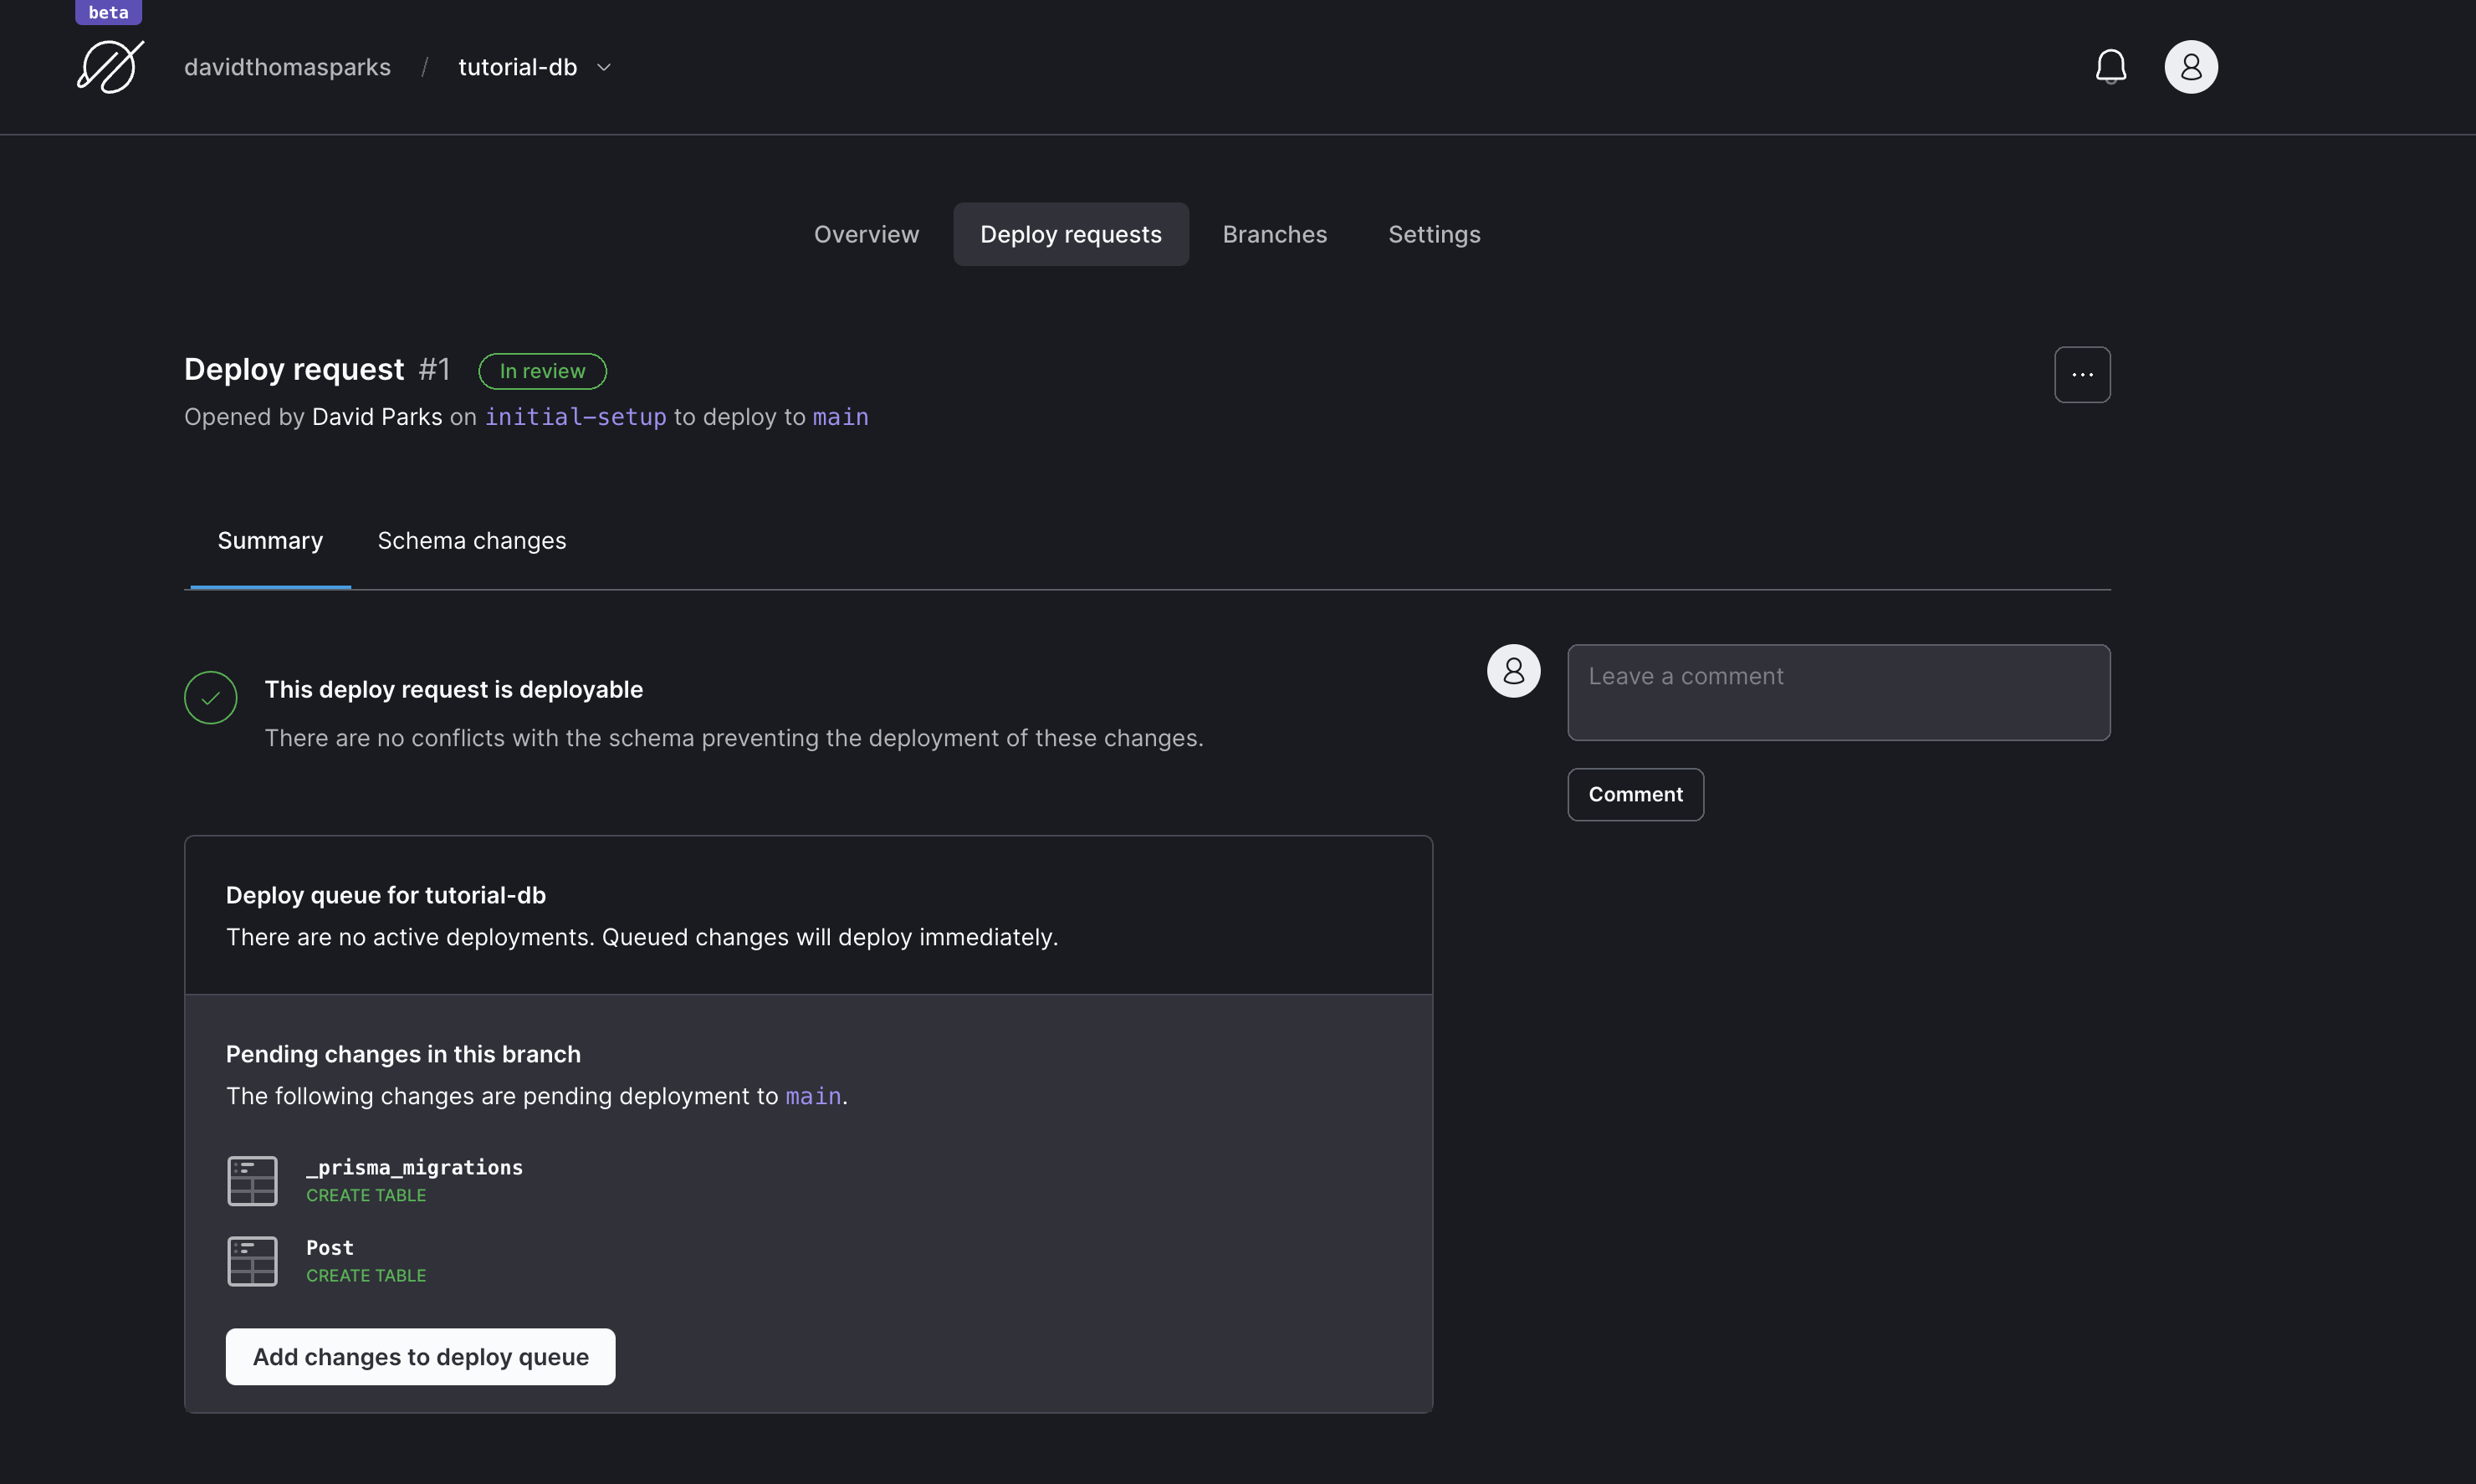 Screenshot showing an open deploy request on PlanetScale